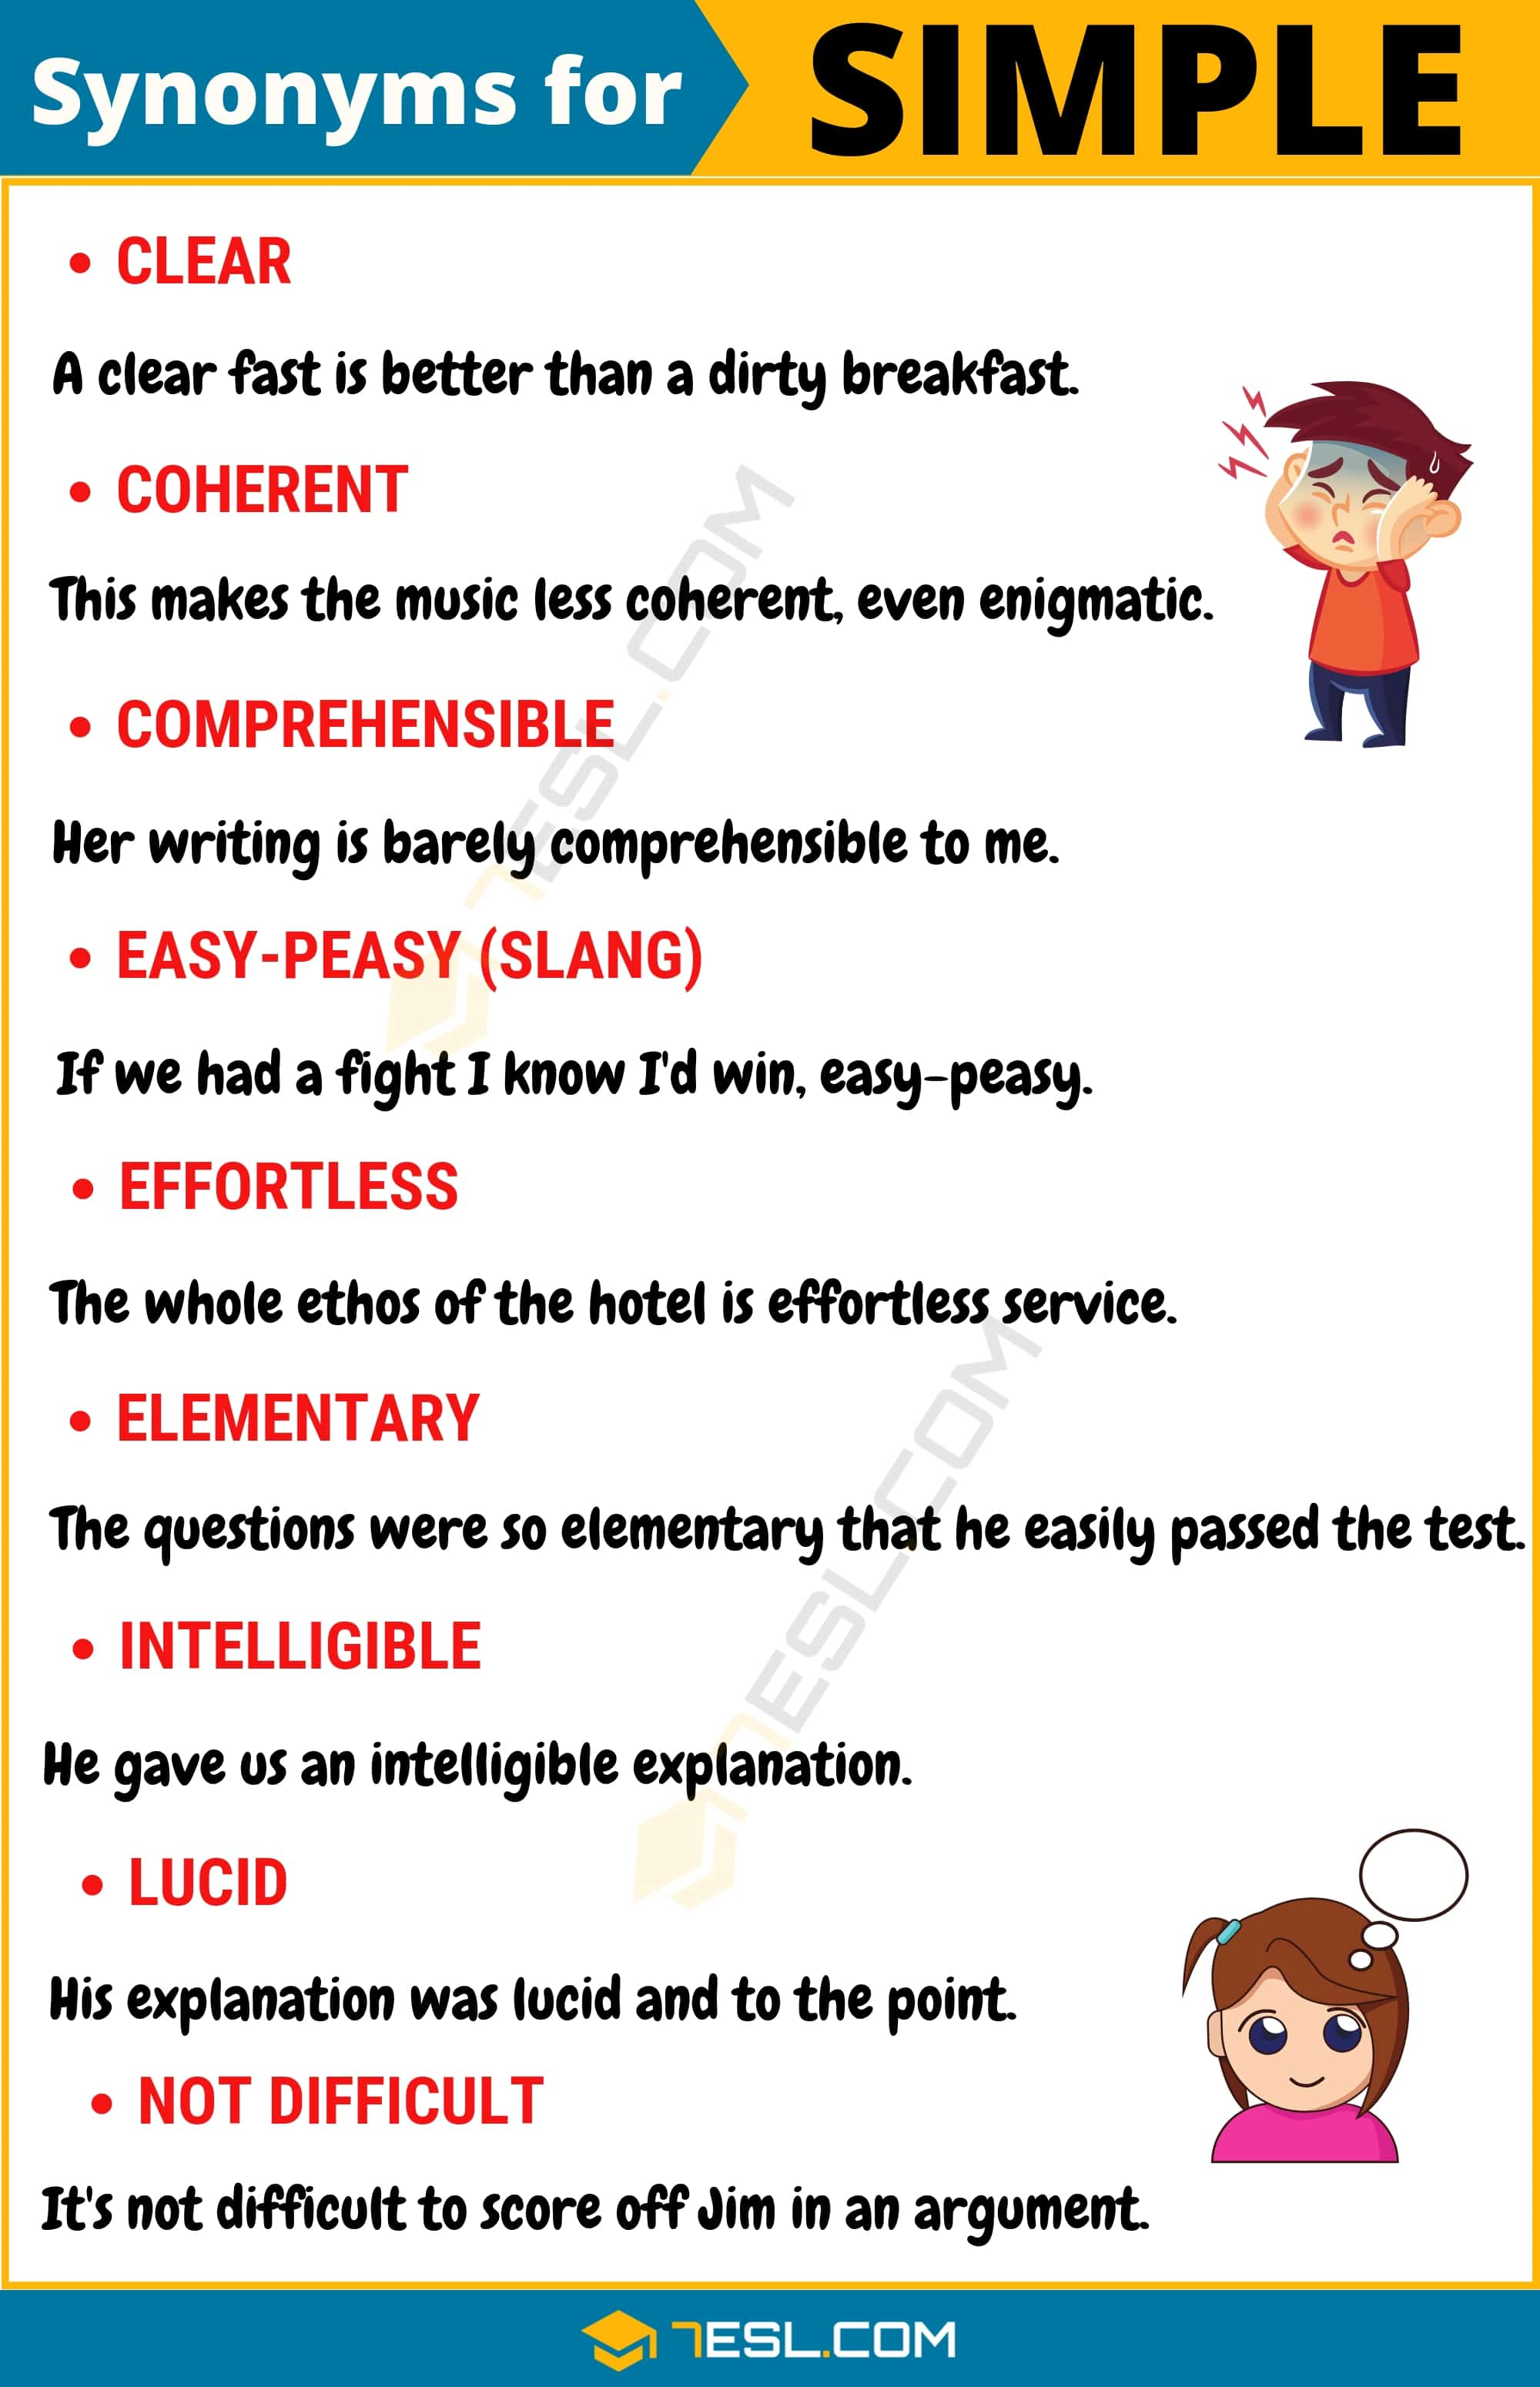 SIMPLE Synonym: List Of 105+ Synonyms For Simple With Useful Examples - 7 E S L